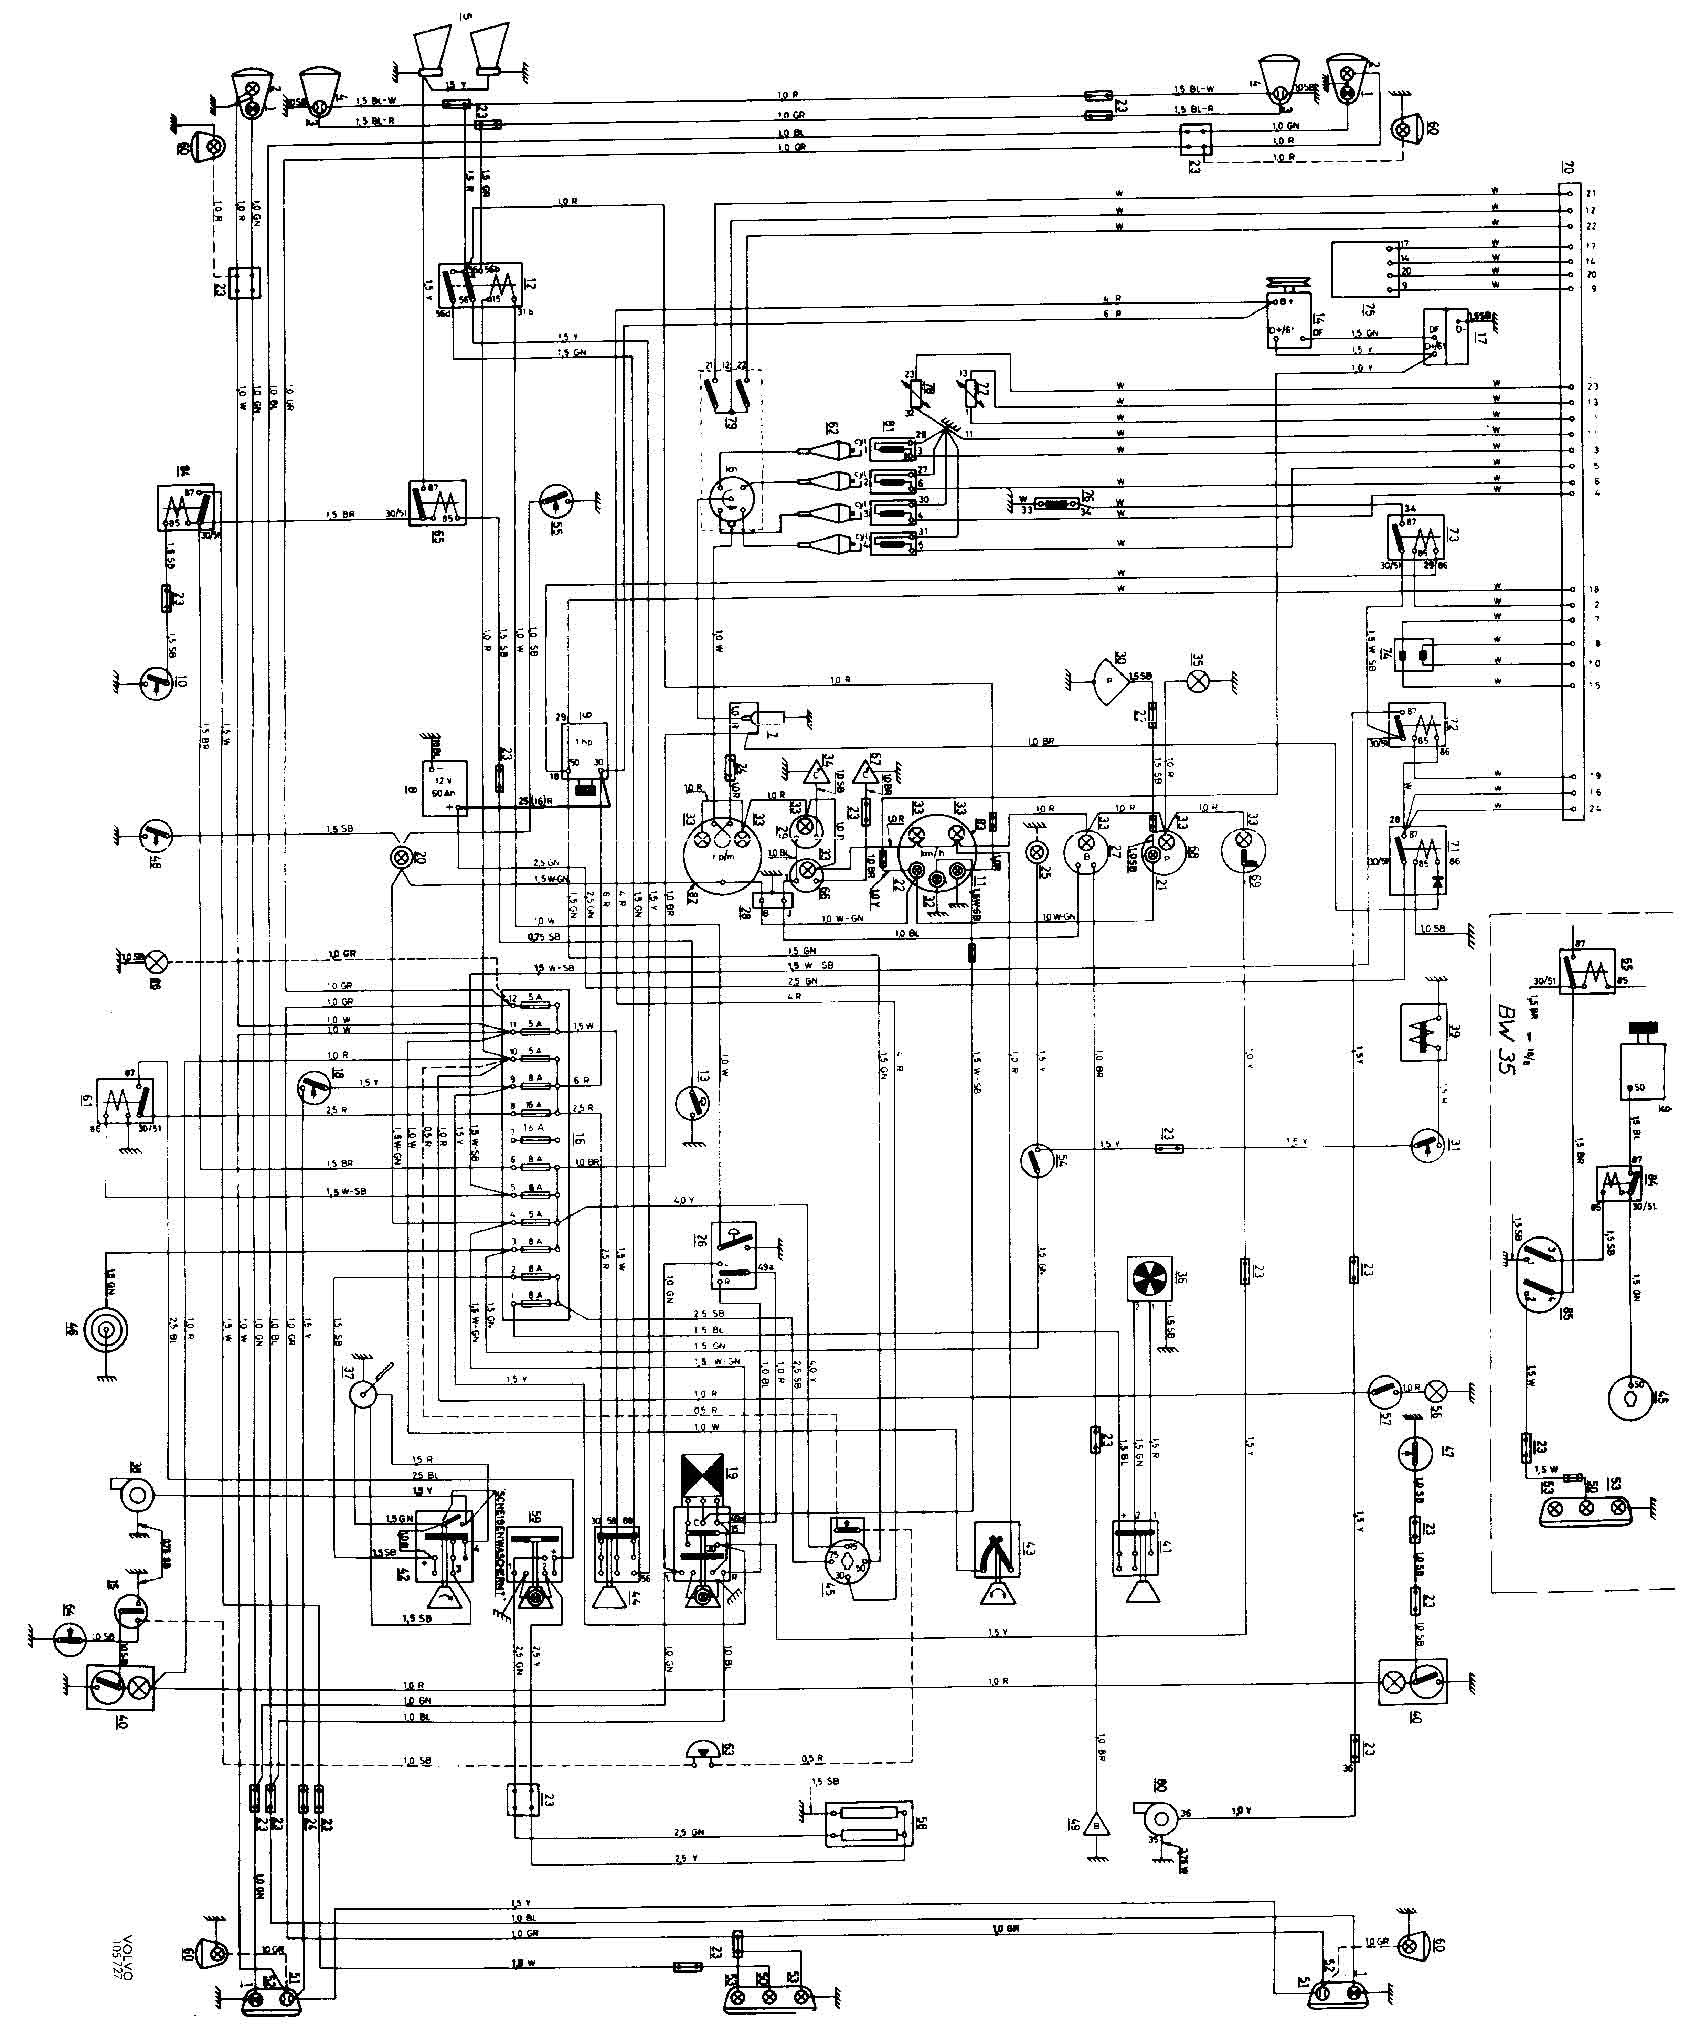 volvo 122 wiring diagram